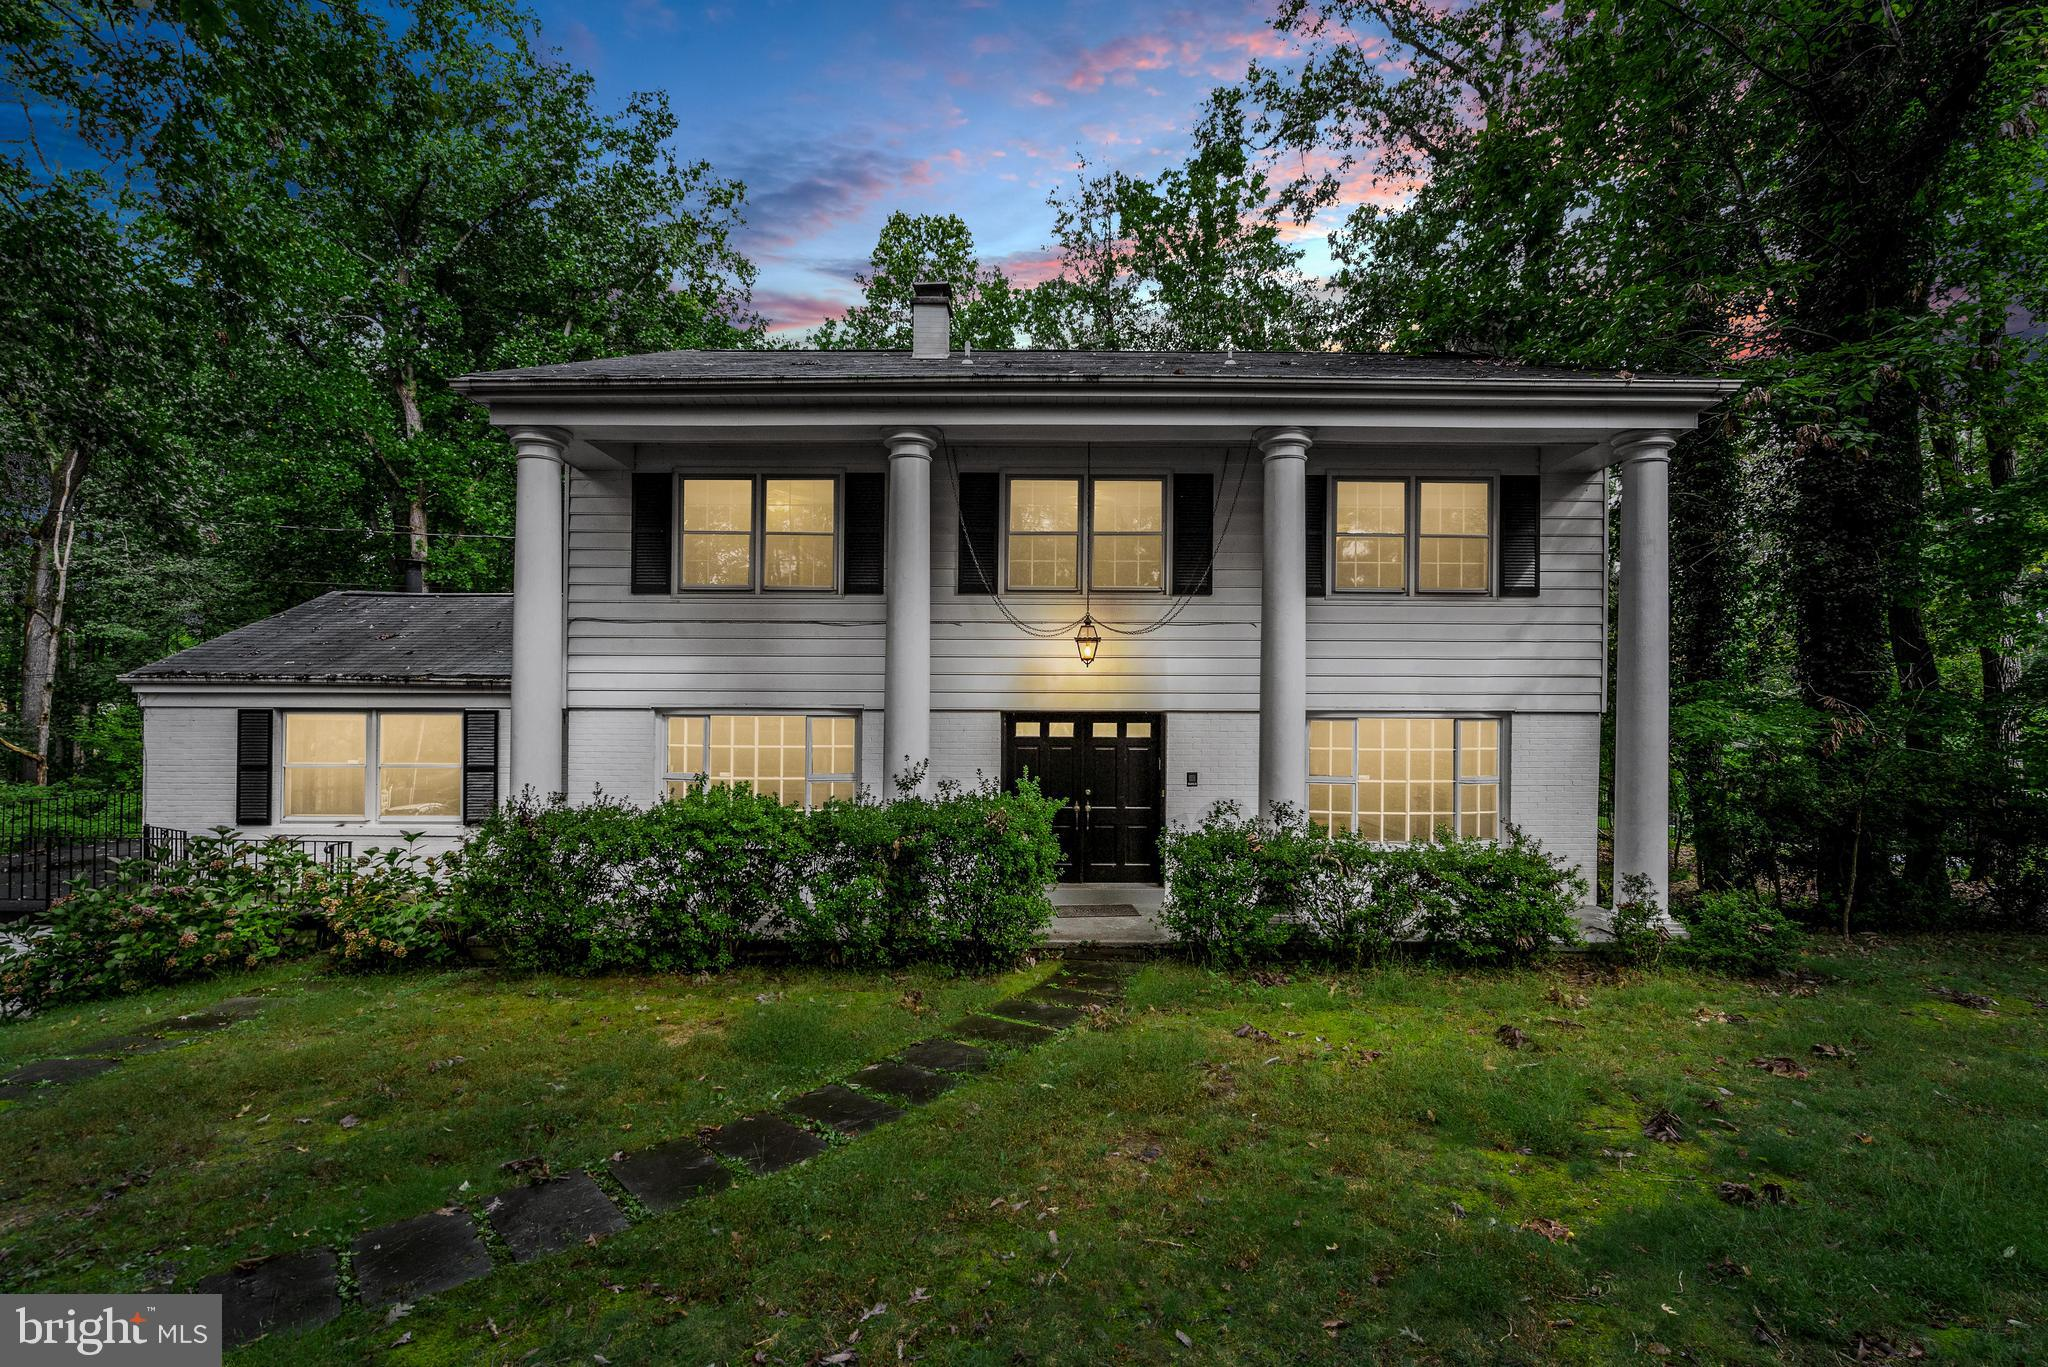 Located in the exclusive Bellview neighborhood of McLean, this classic colonial exemplifies idyllic